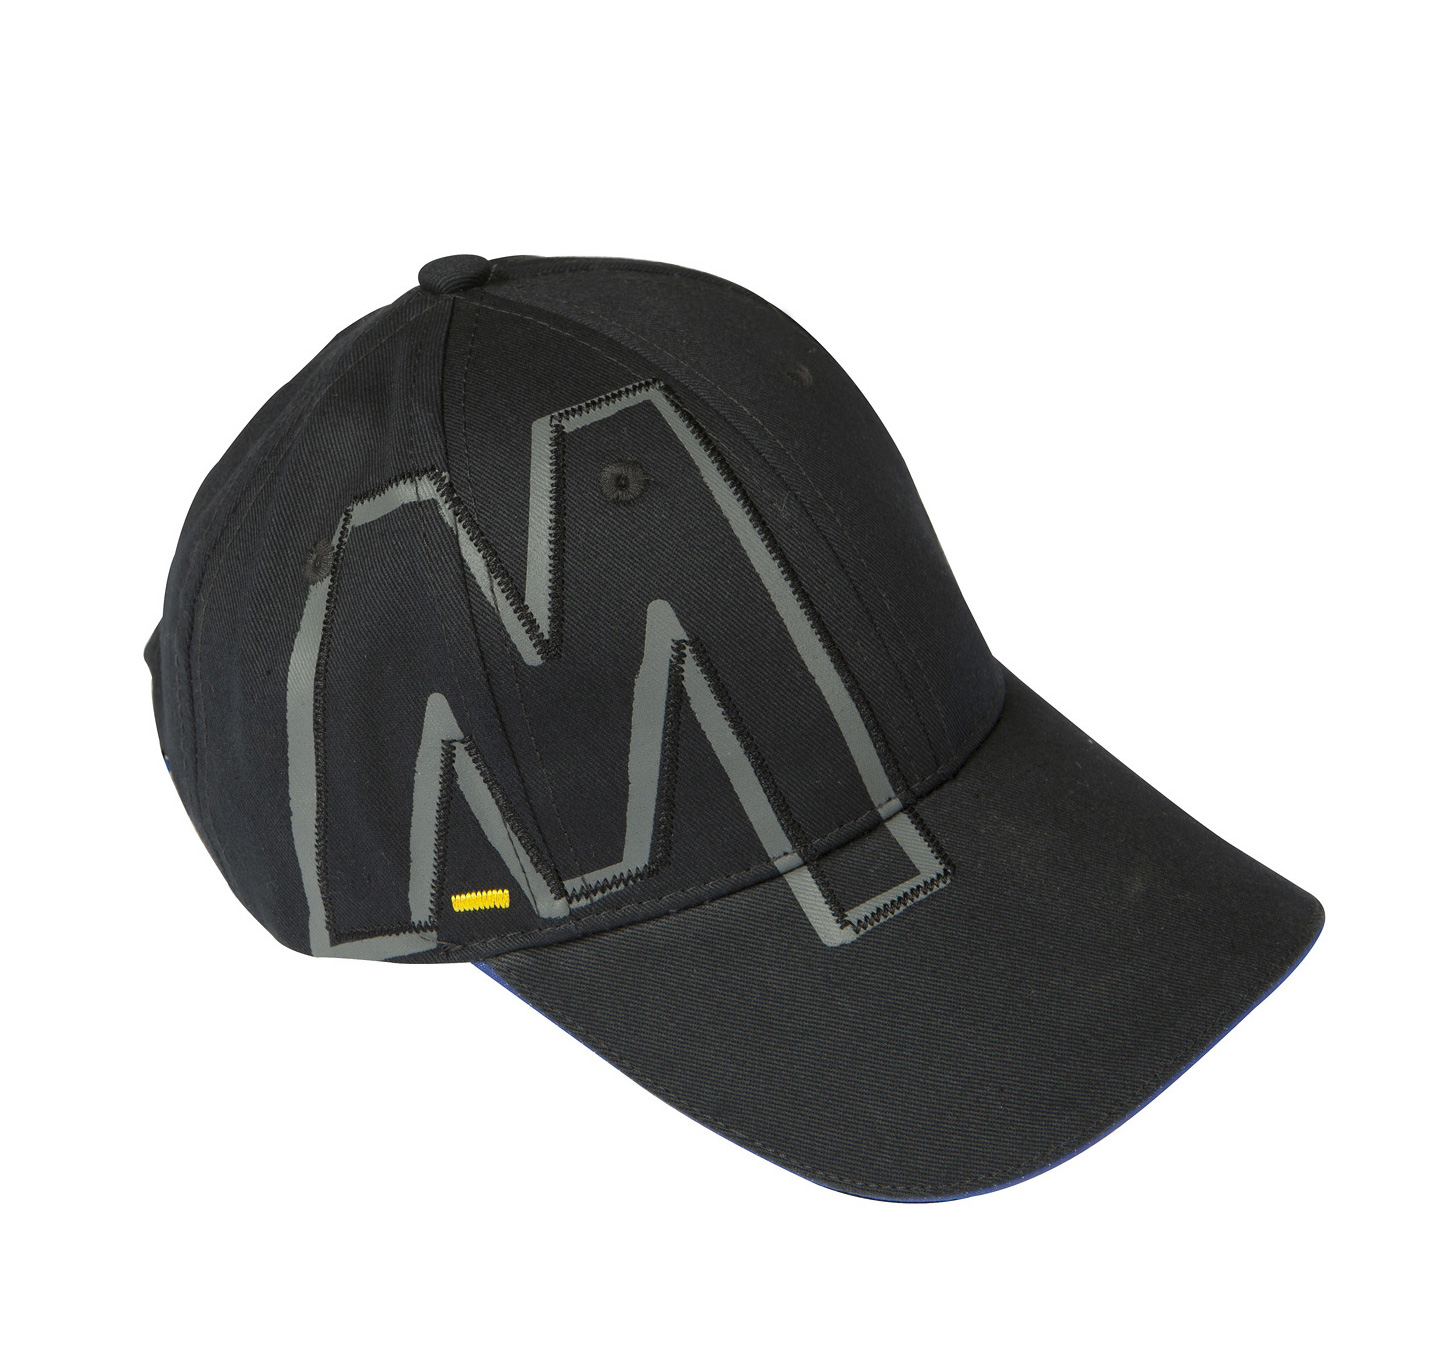 Embroyered cap for kids